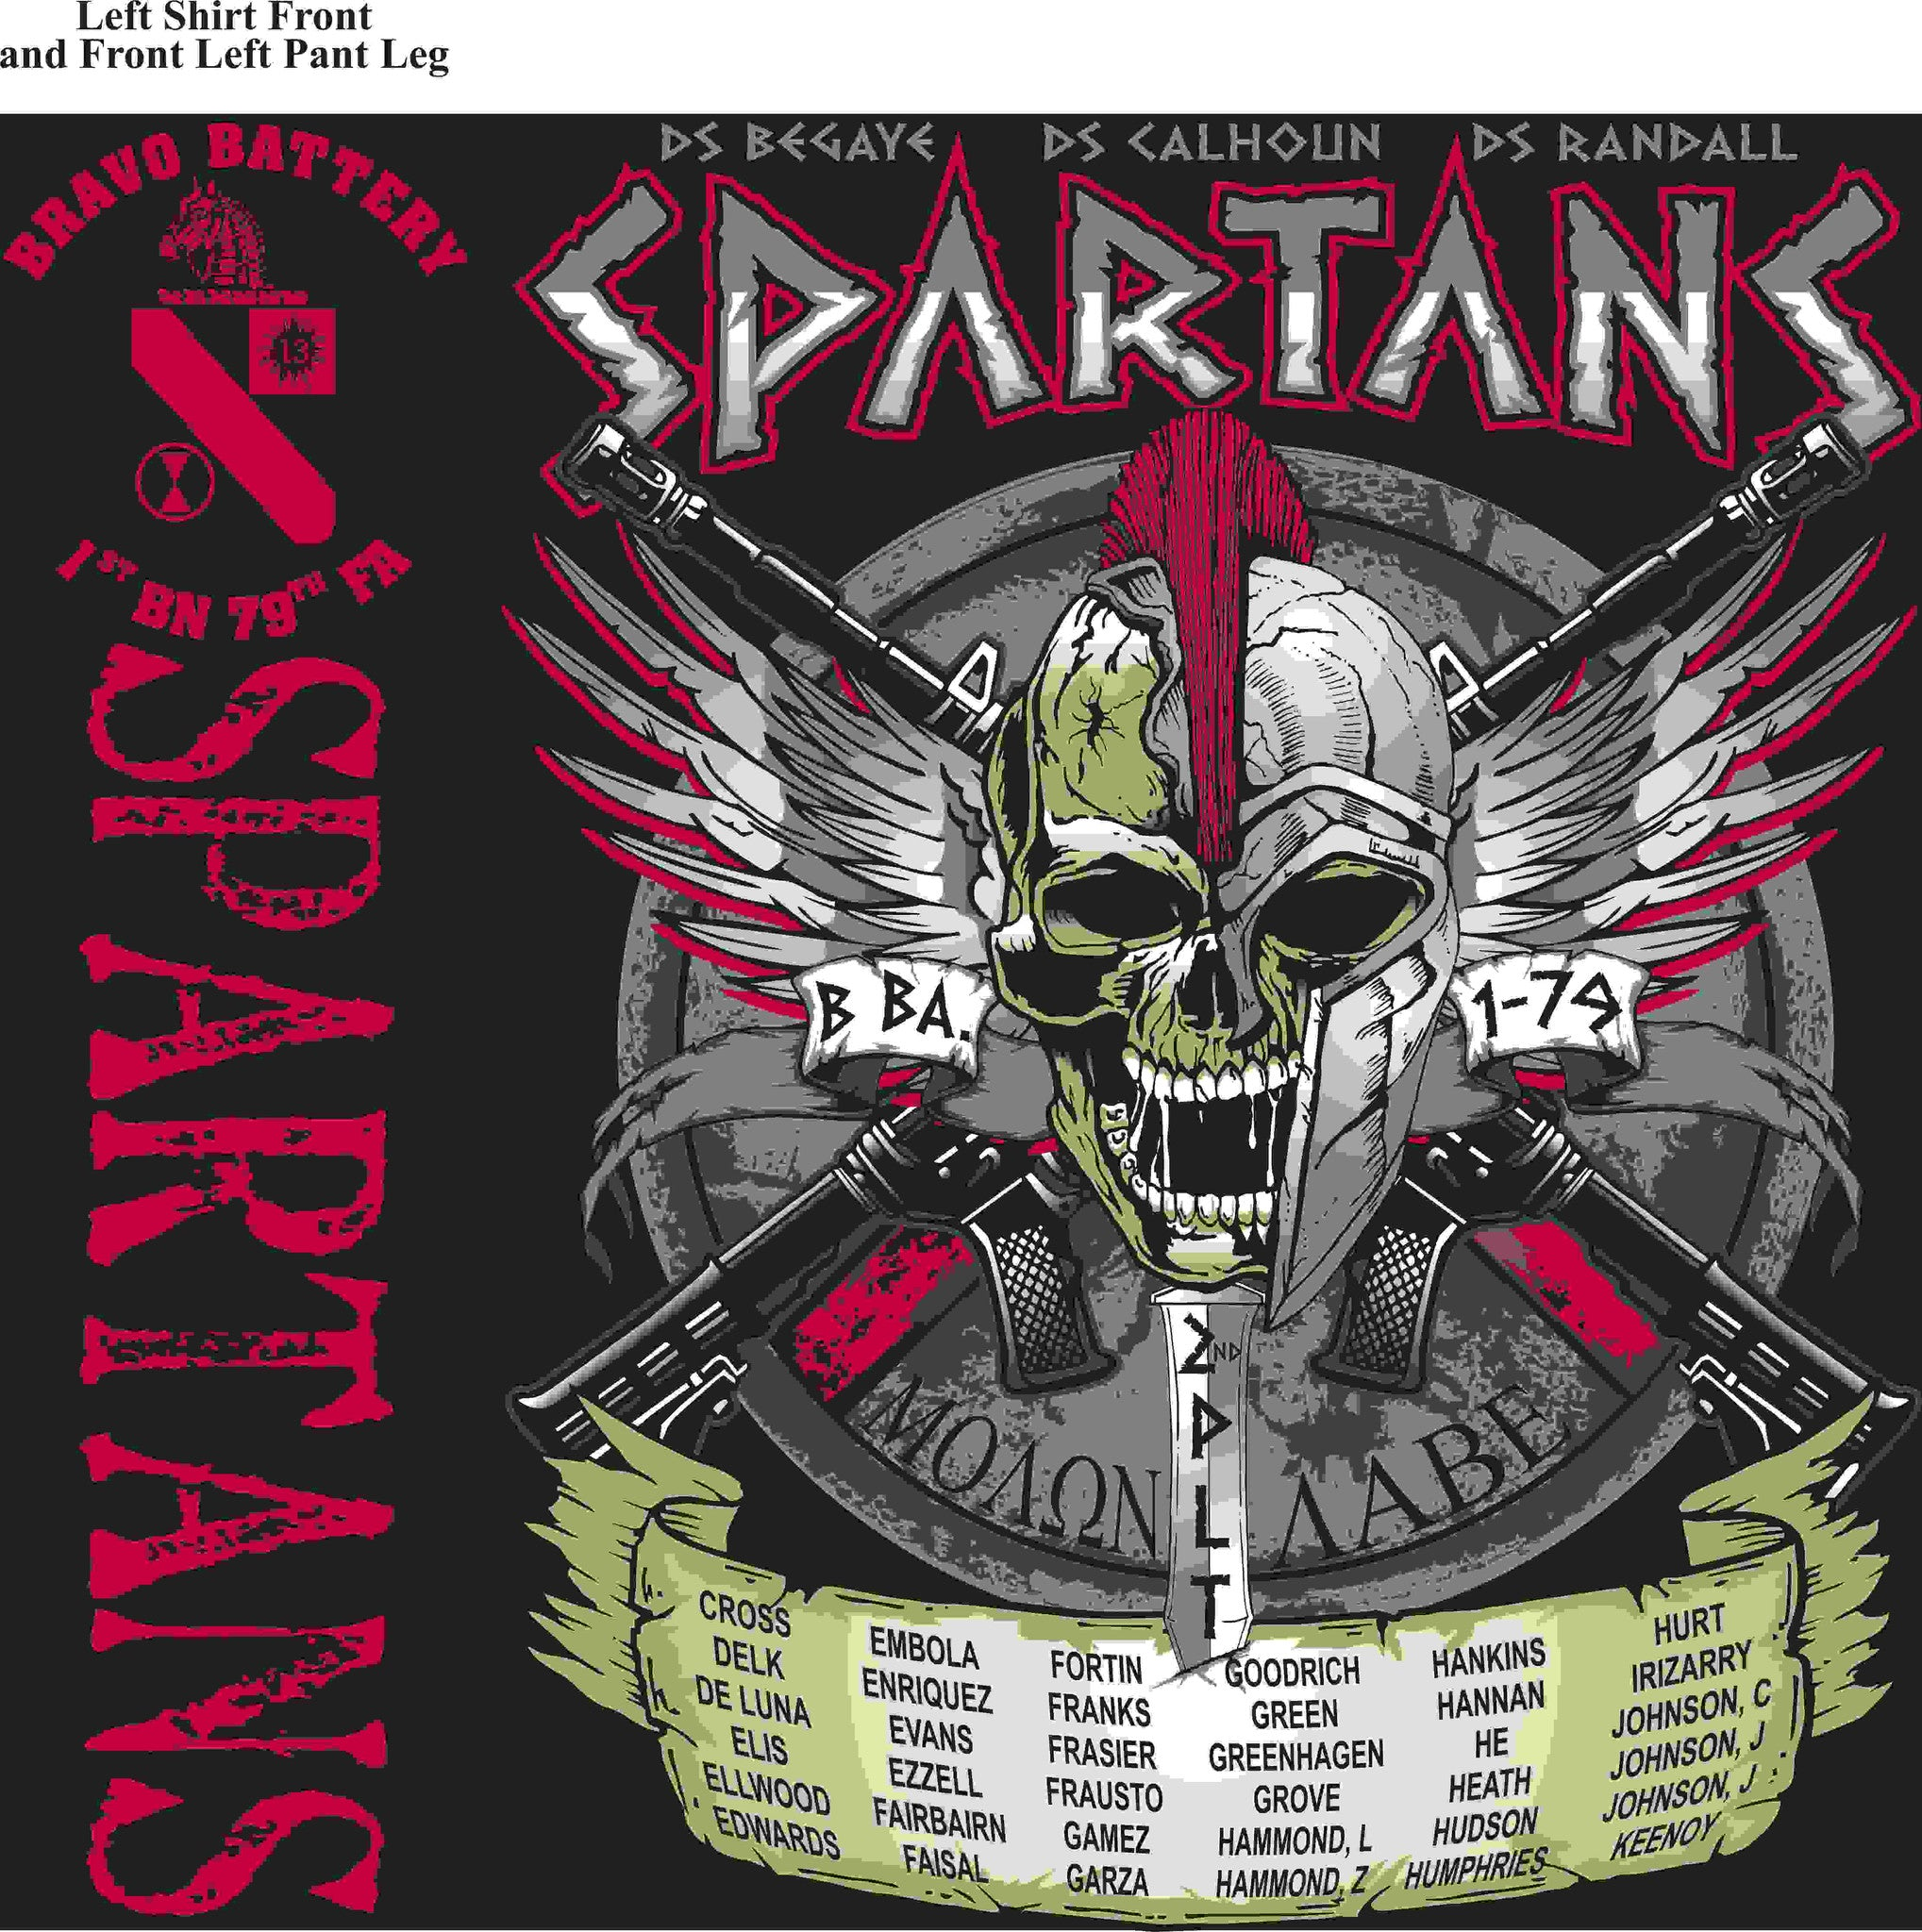 PLATOON SHIRTS (2nd generation print) BRAVO 1st 79th SPARTANS MAY 2016